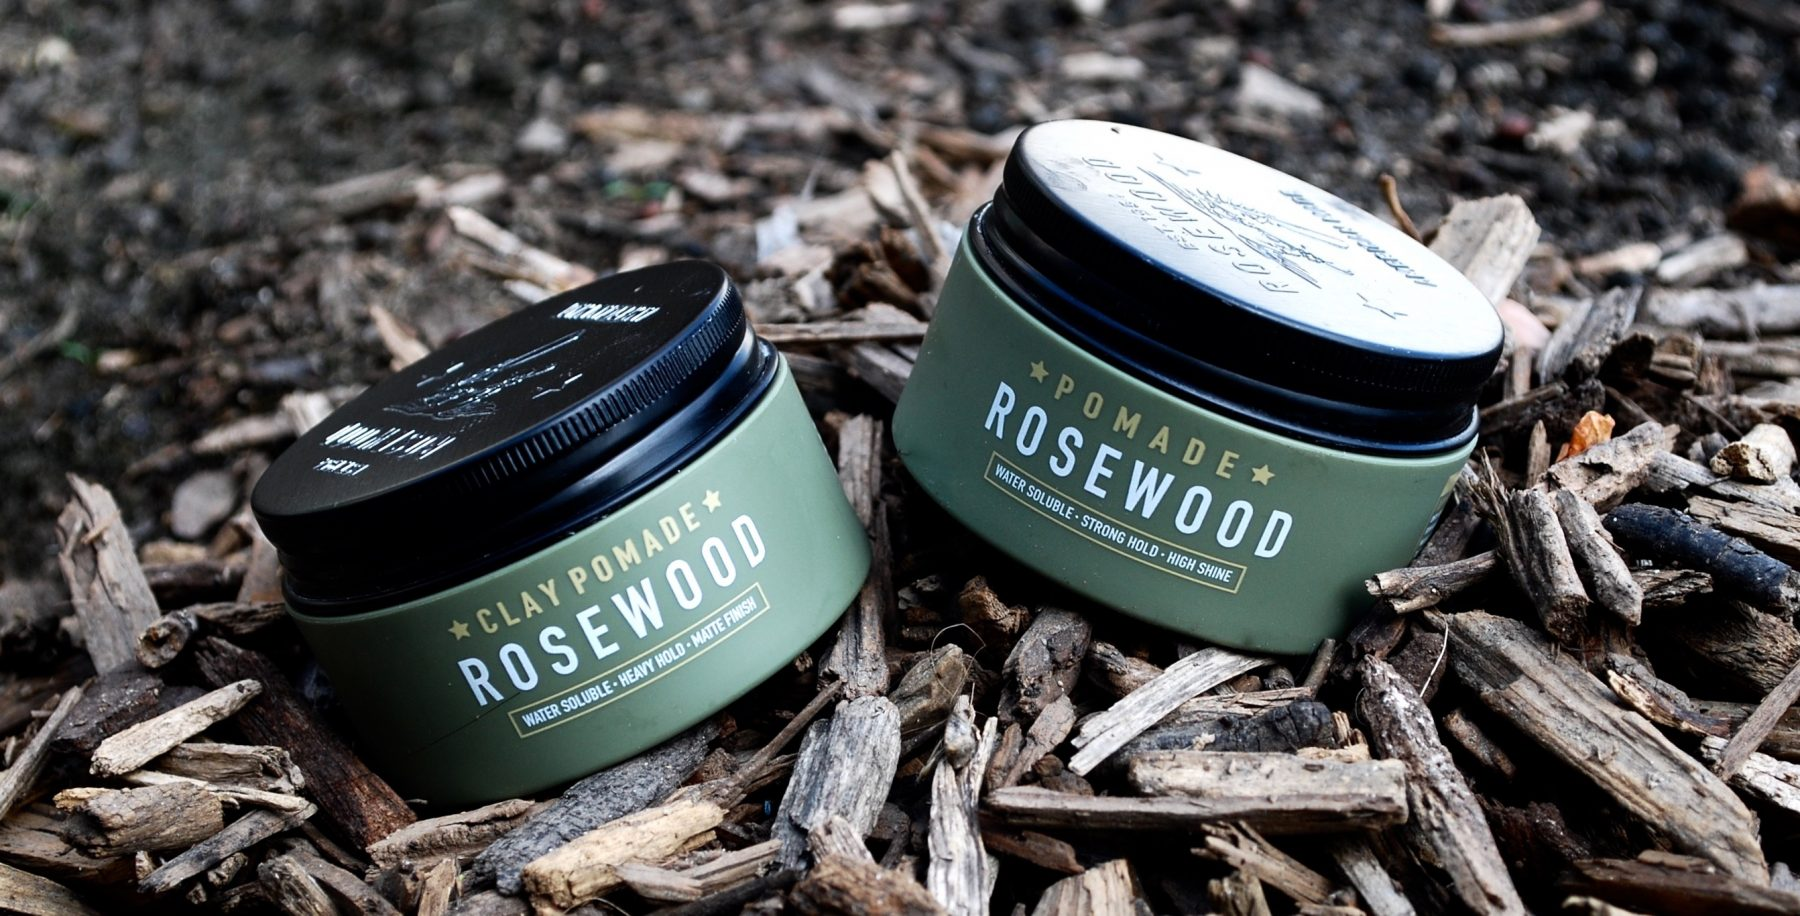 ROSEWOOD POMADE